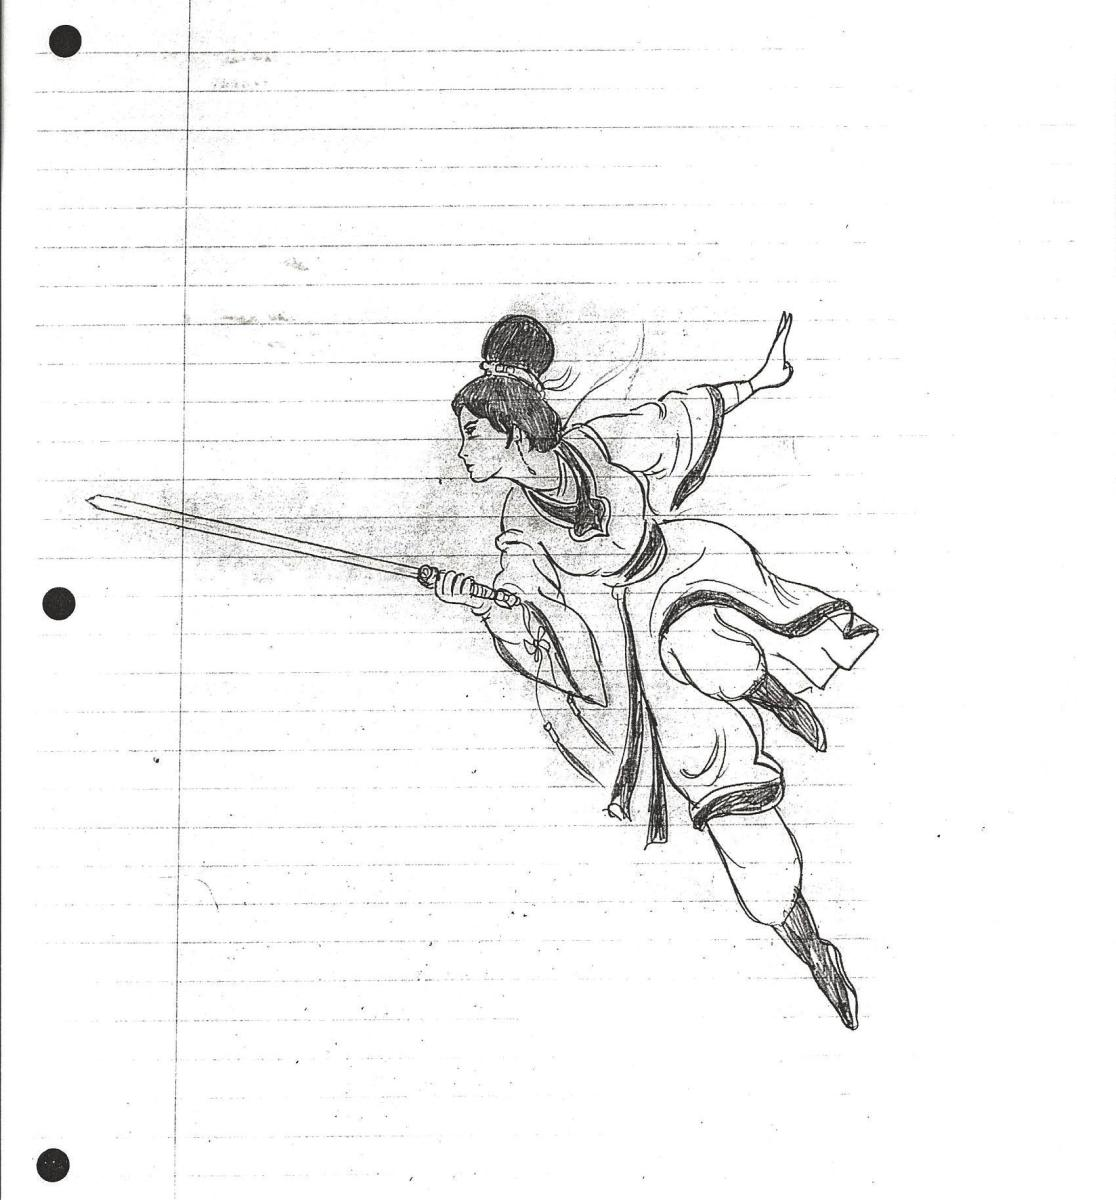 Single Figure Showing a Combat Movement by Bruce Lee